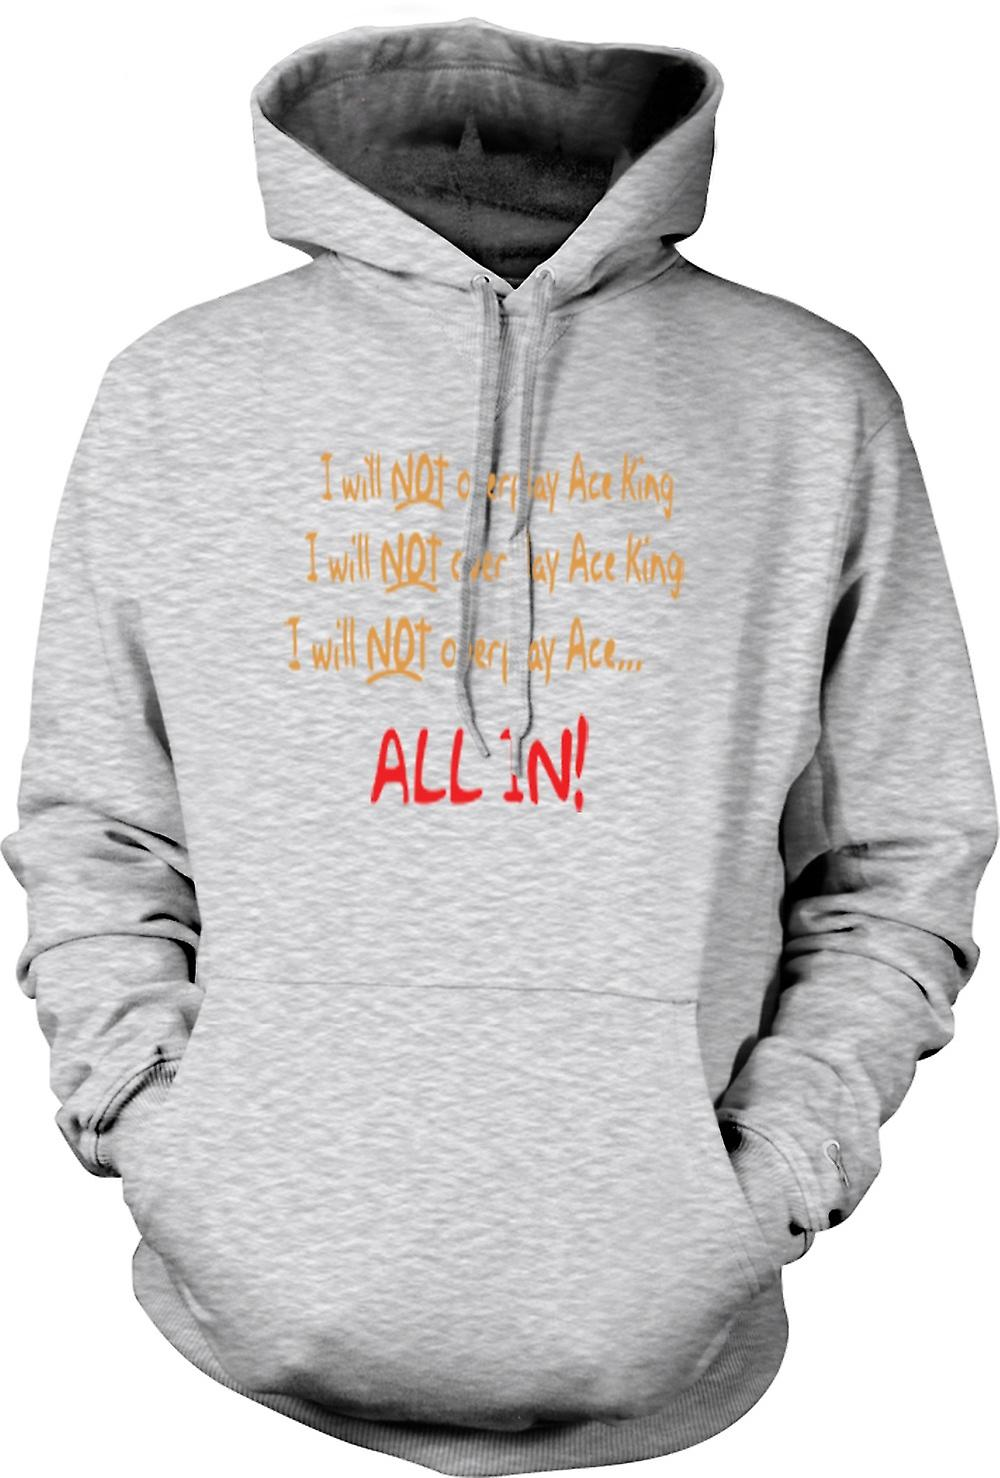 Mens Hoodie - I Will Not Overplay Ace King All In!